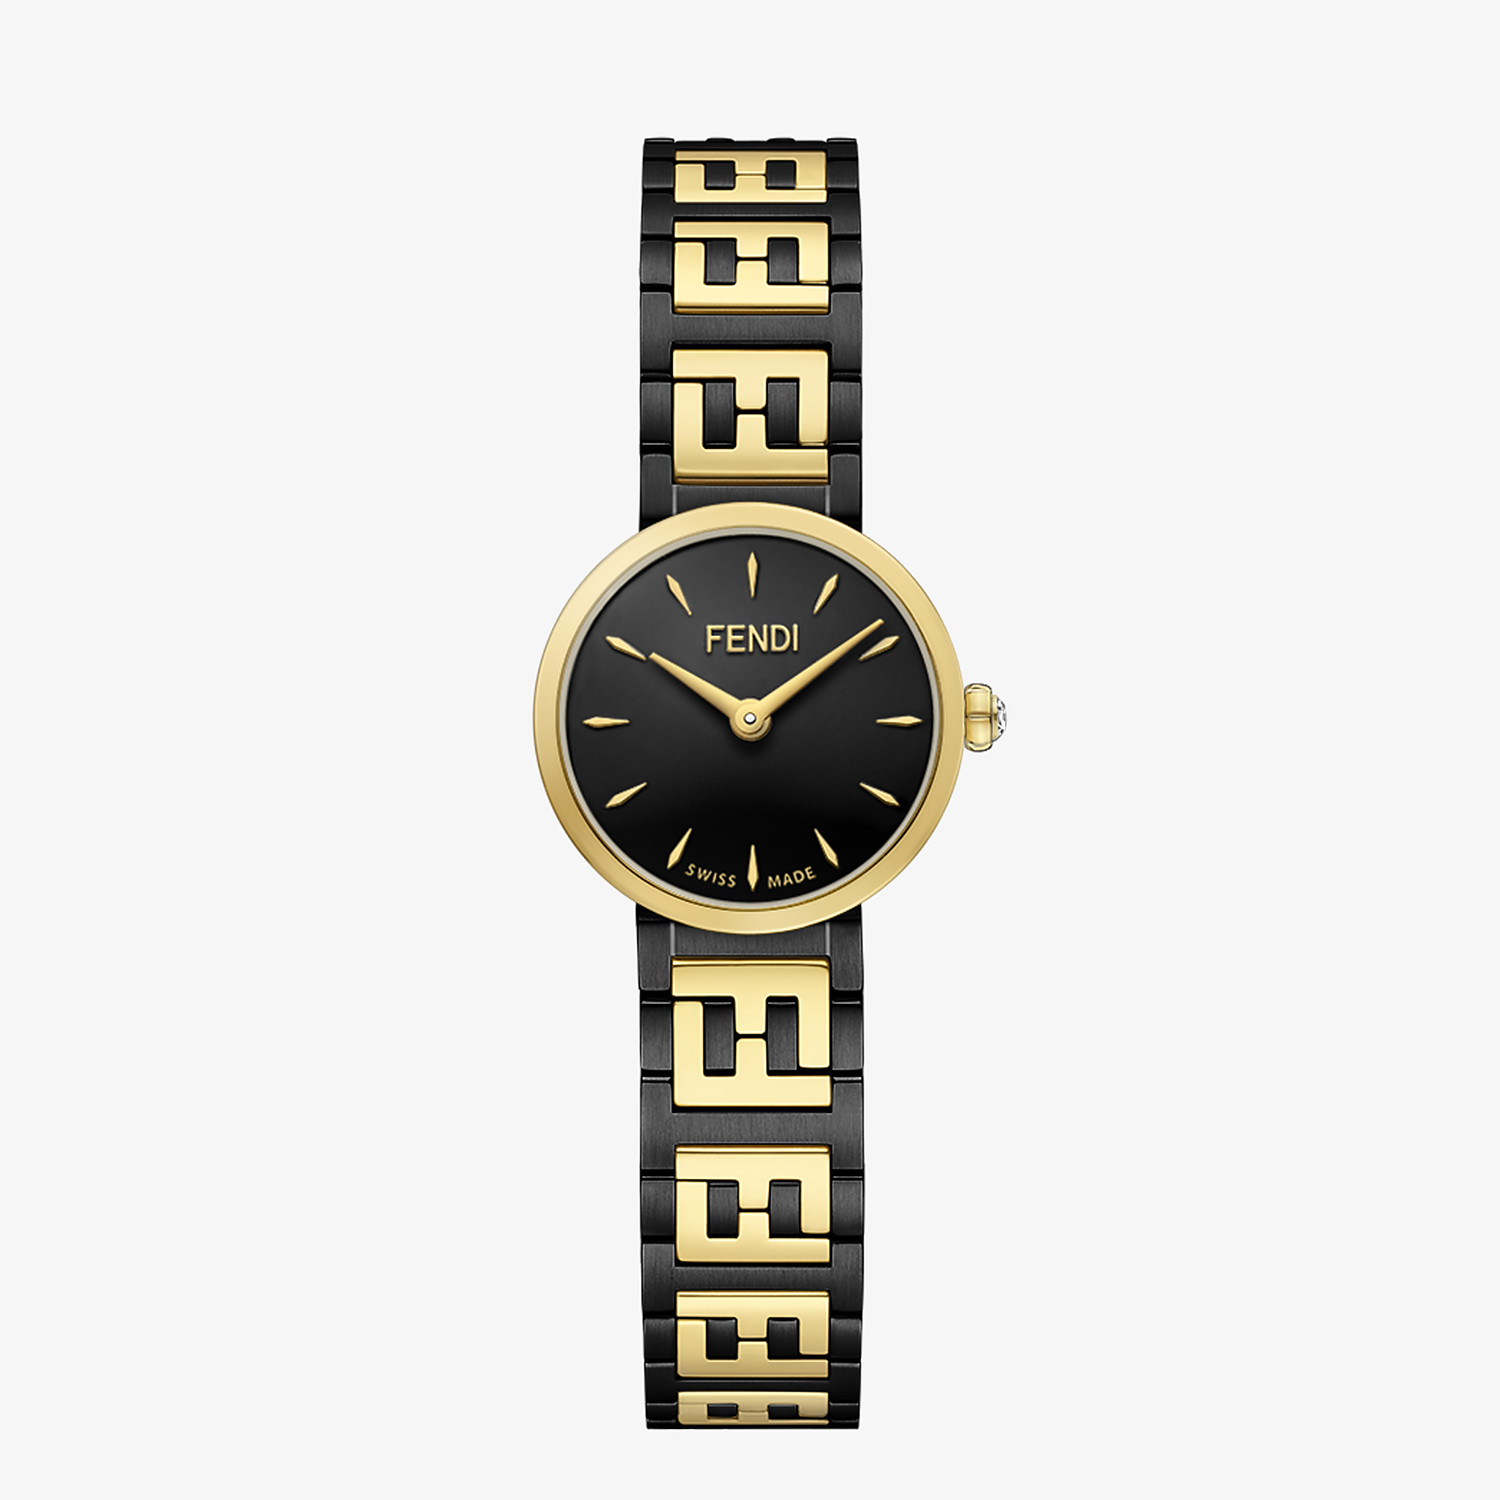 FENDI FOREVER FENDI - 19 MM - Watch with FF logo bracelet - view 1 detail